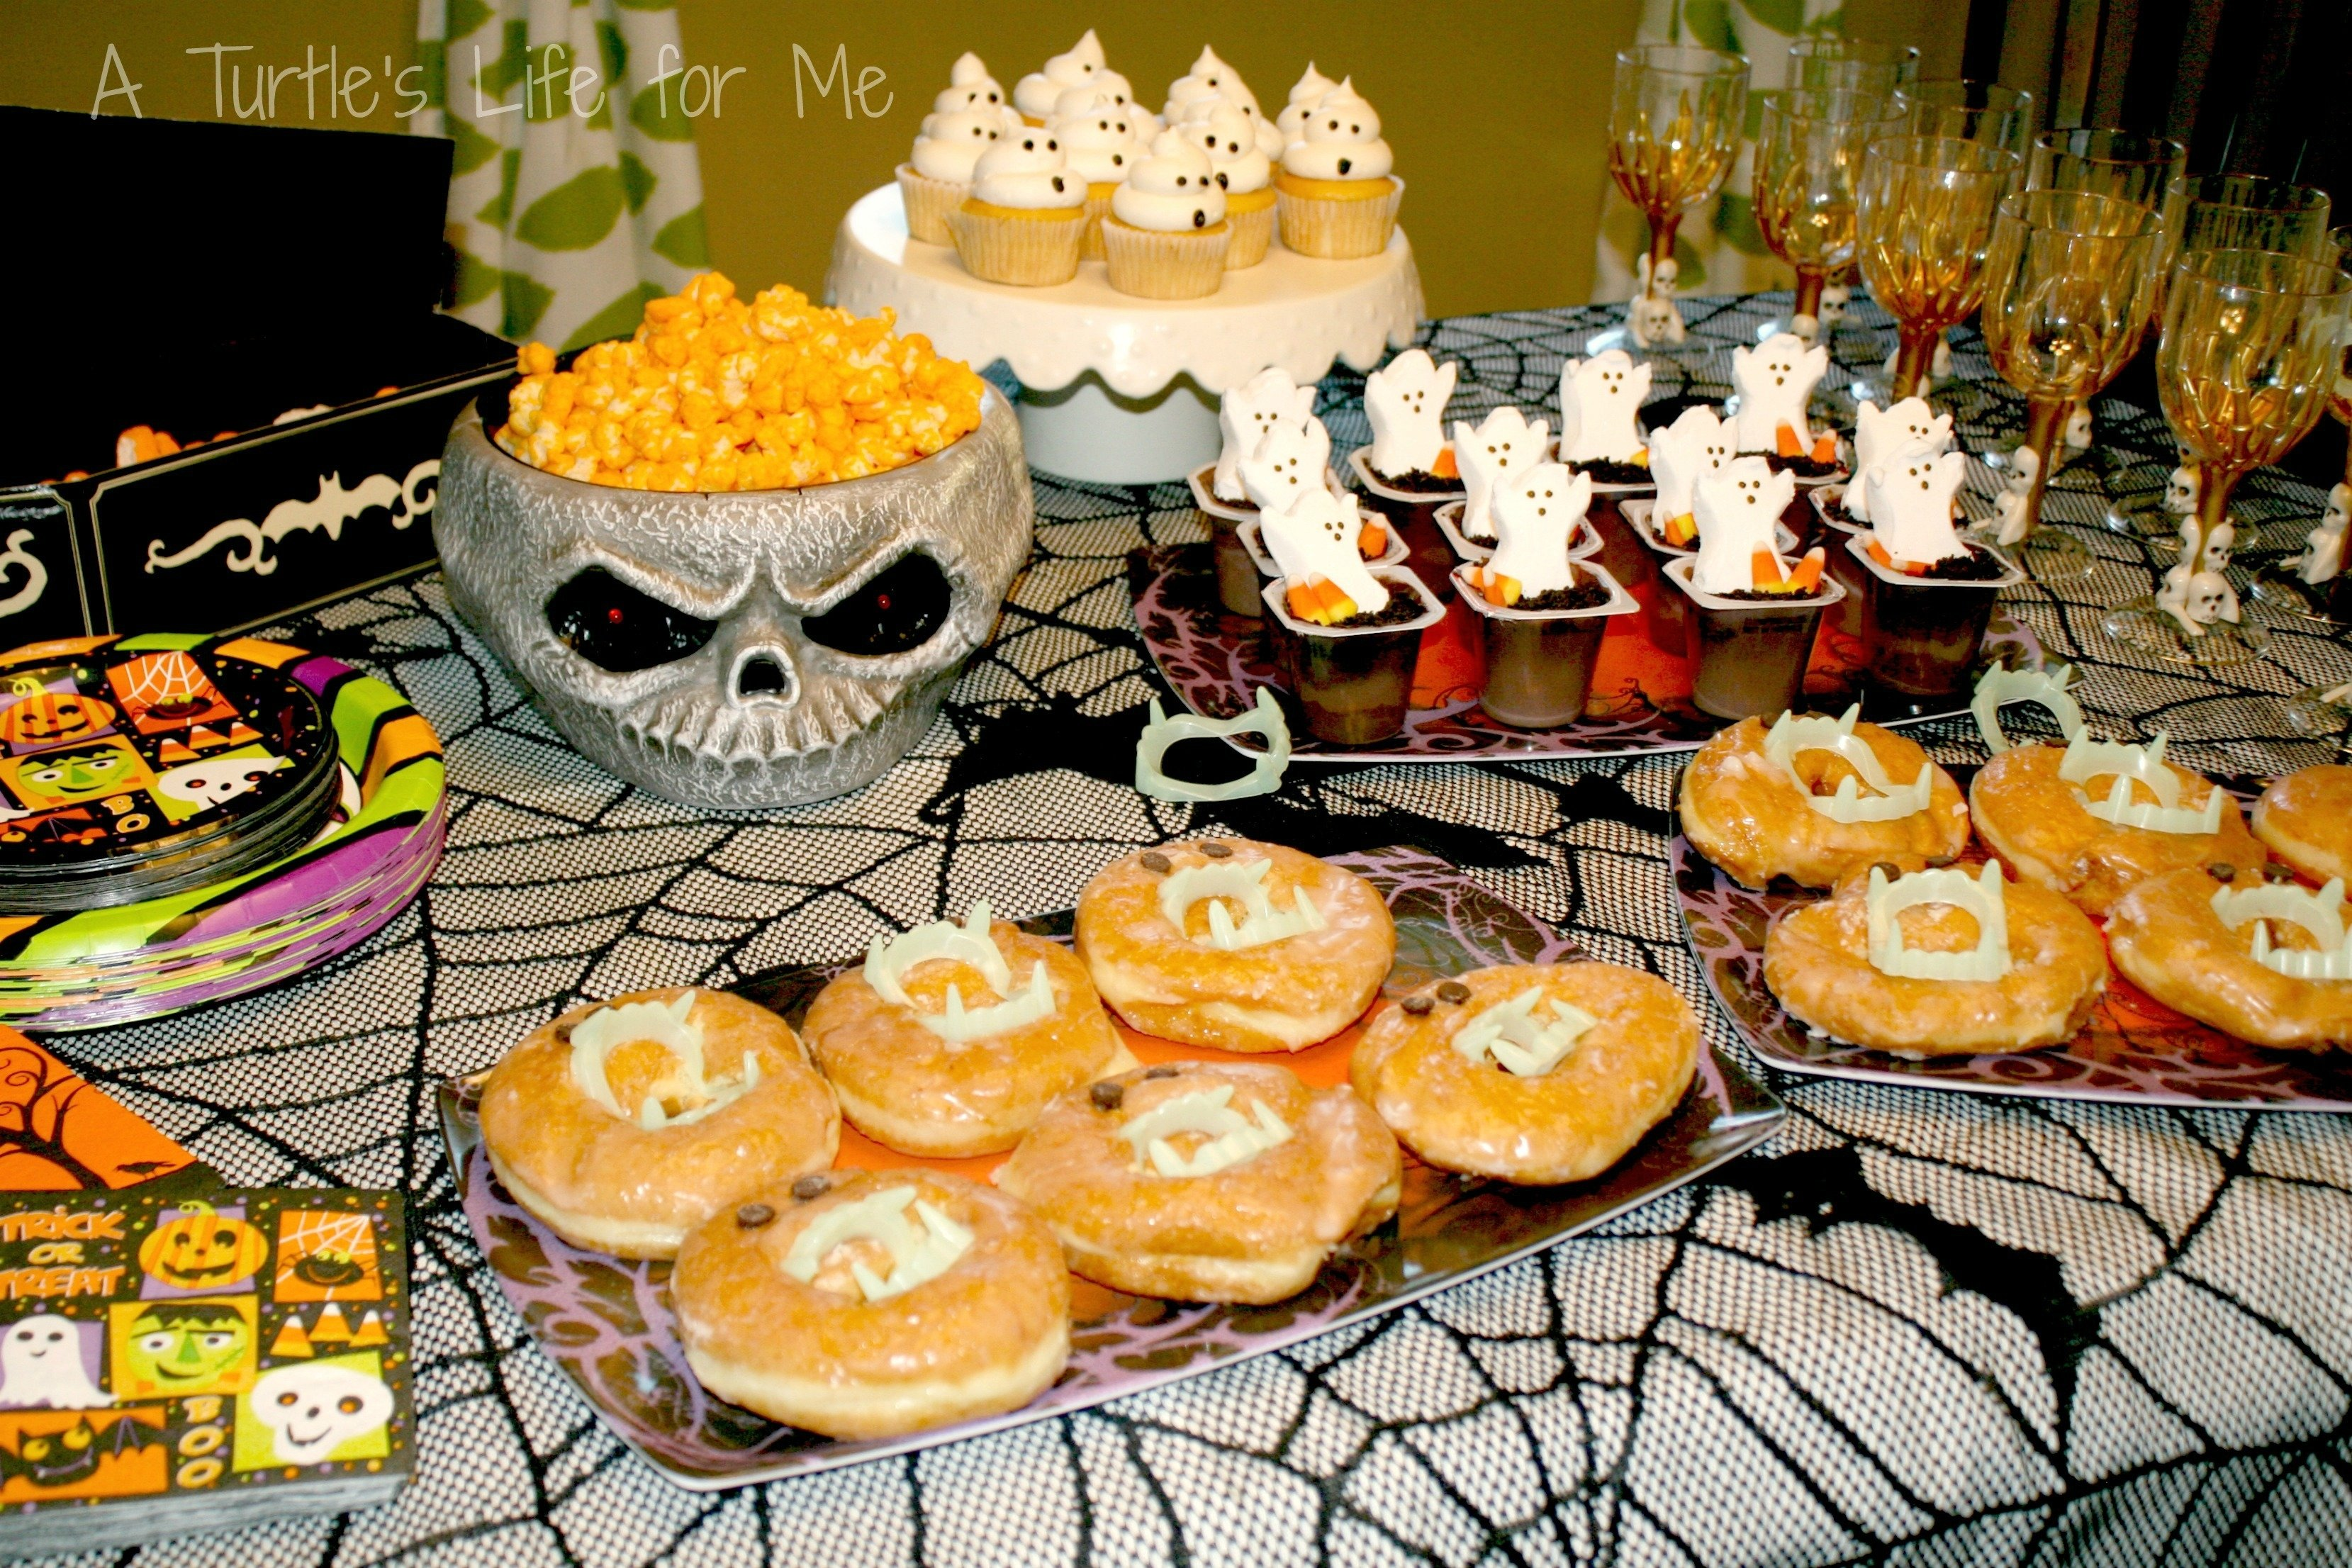 10 Trendy Halloween Birthday Party Ideas For Kids easiest kids halloween party ever a turtles life for me 1 2021